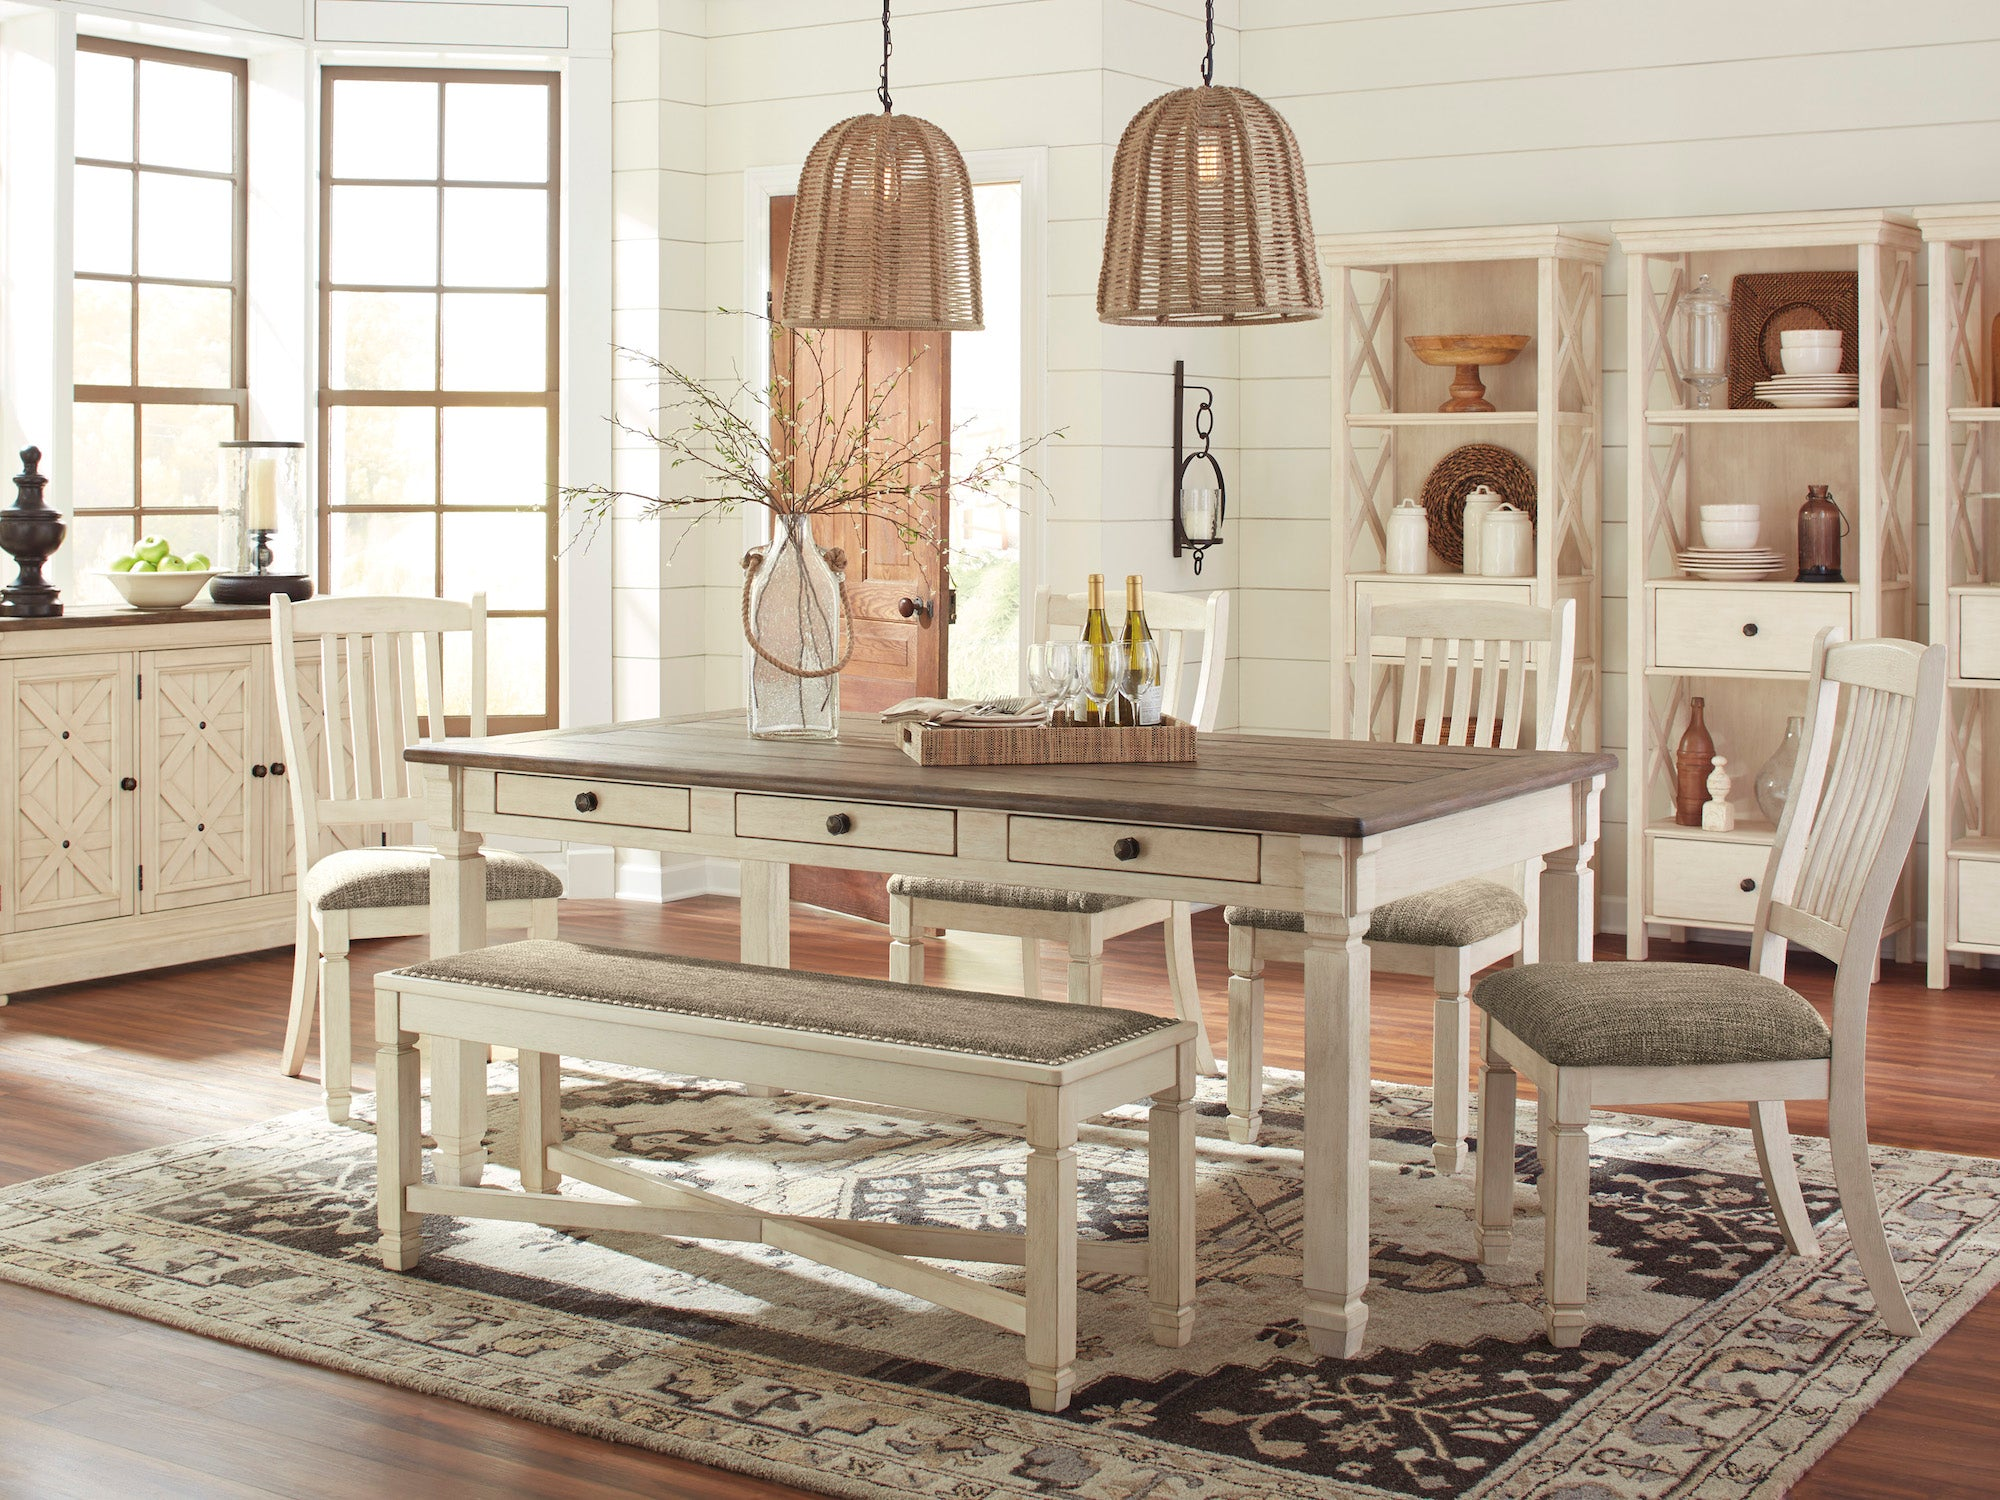 Bolanburg 6 Piece Dining Collection By Signature Design By